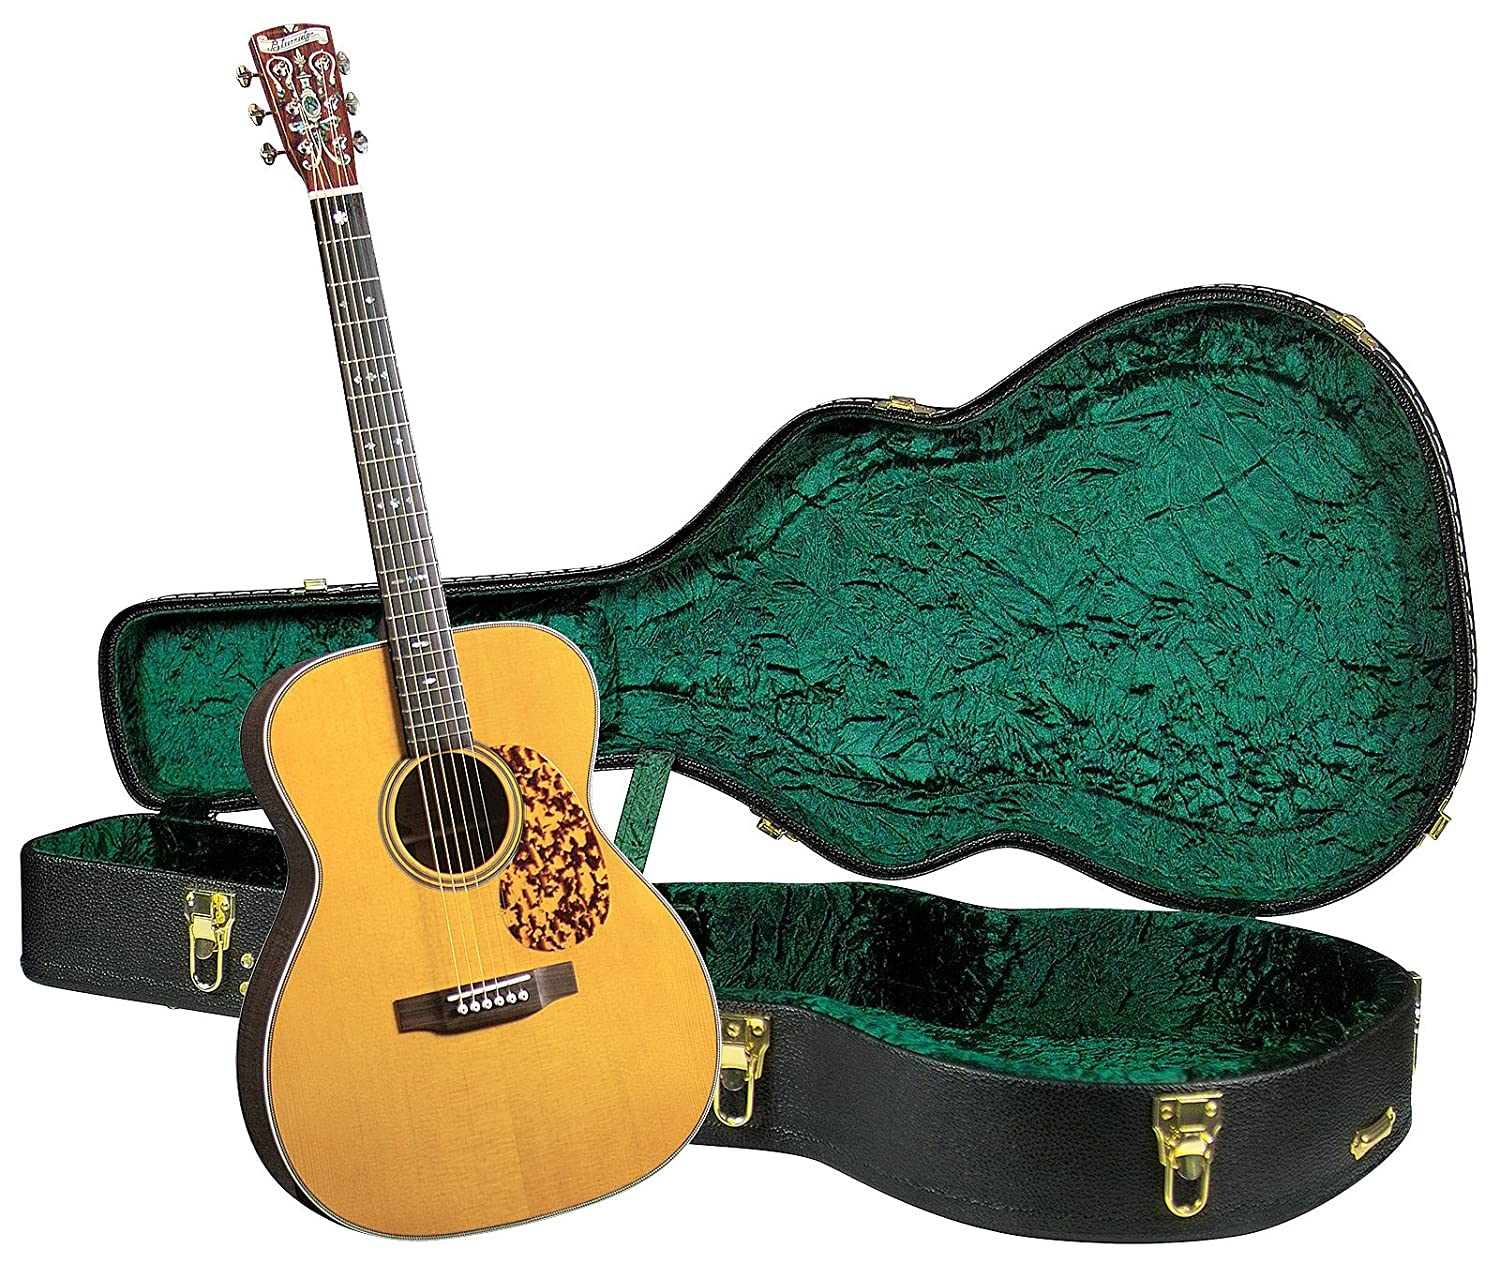 Amazon.com: Blueridge BR-163 Historic Series 000 Guitar with Deluxe  Hardshell Case: Musical Instruments